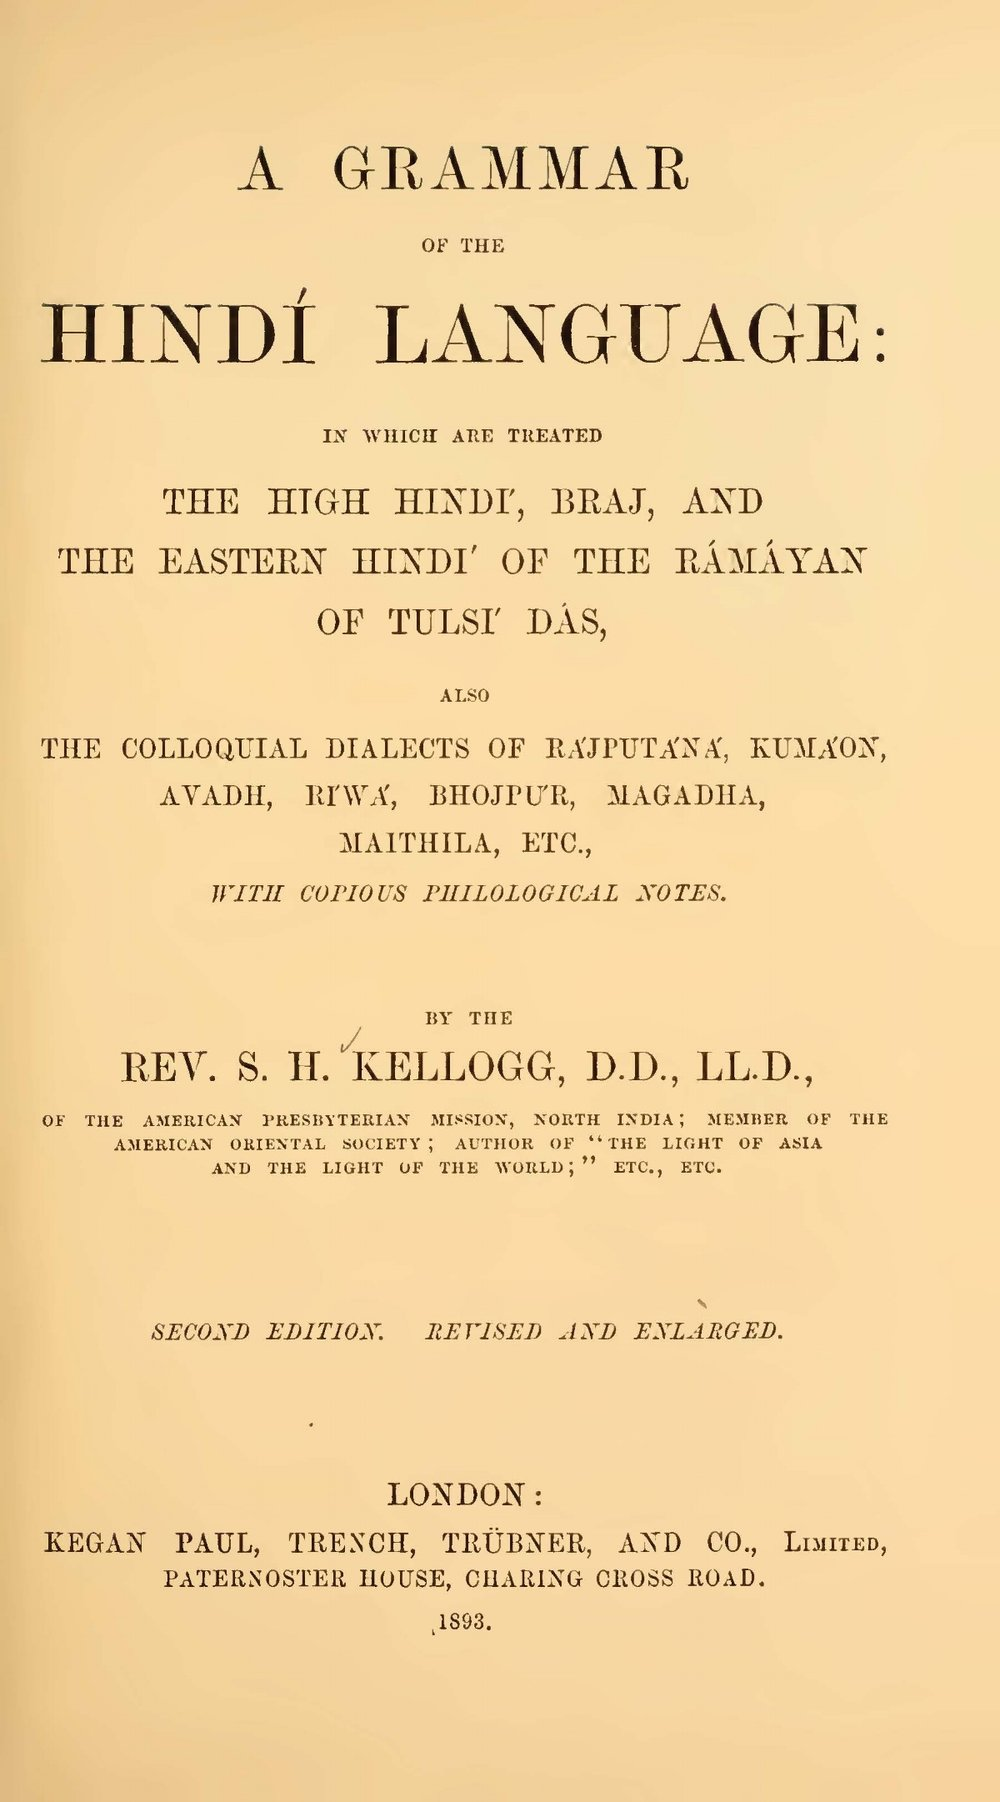 Kellogg, Samuel Henry, A Grammar of the Hindi Language Title Page.jpg